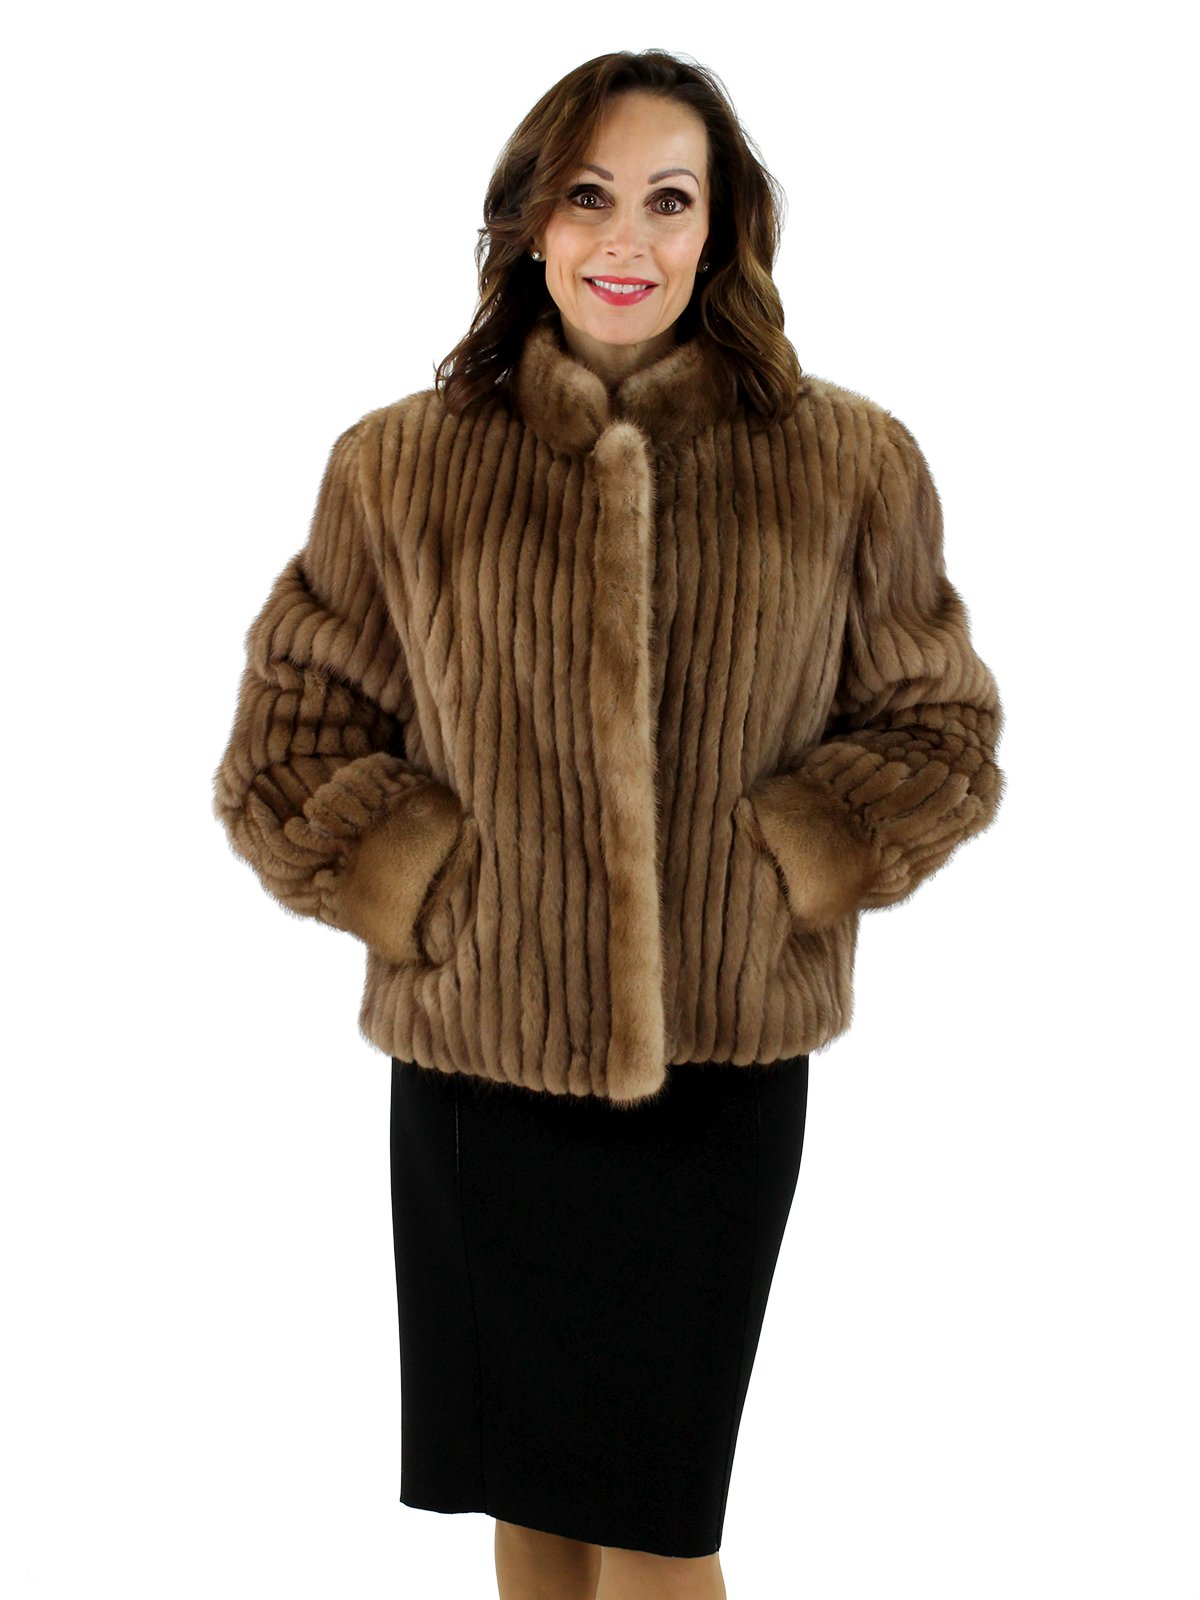 34a7d049c3d Autumn Haze Cord Cut Mink Fur Jacket - Women's Medium